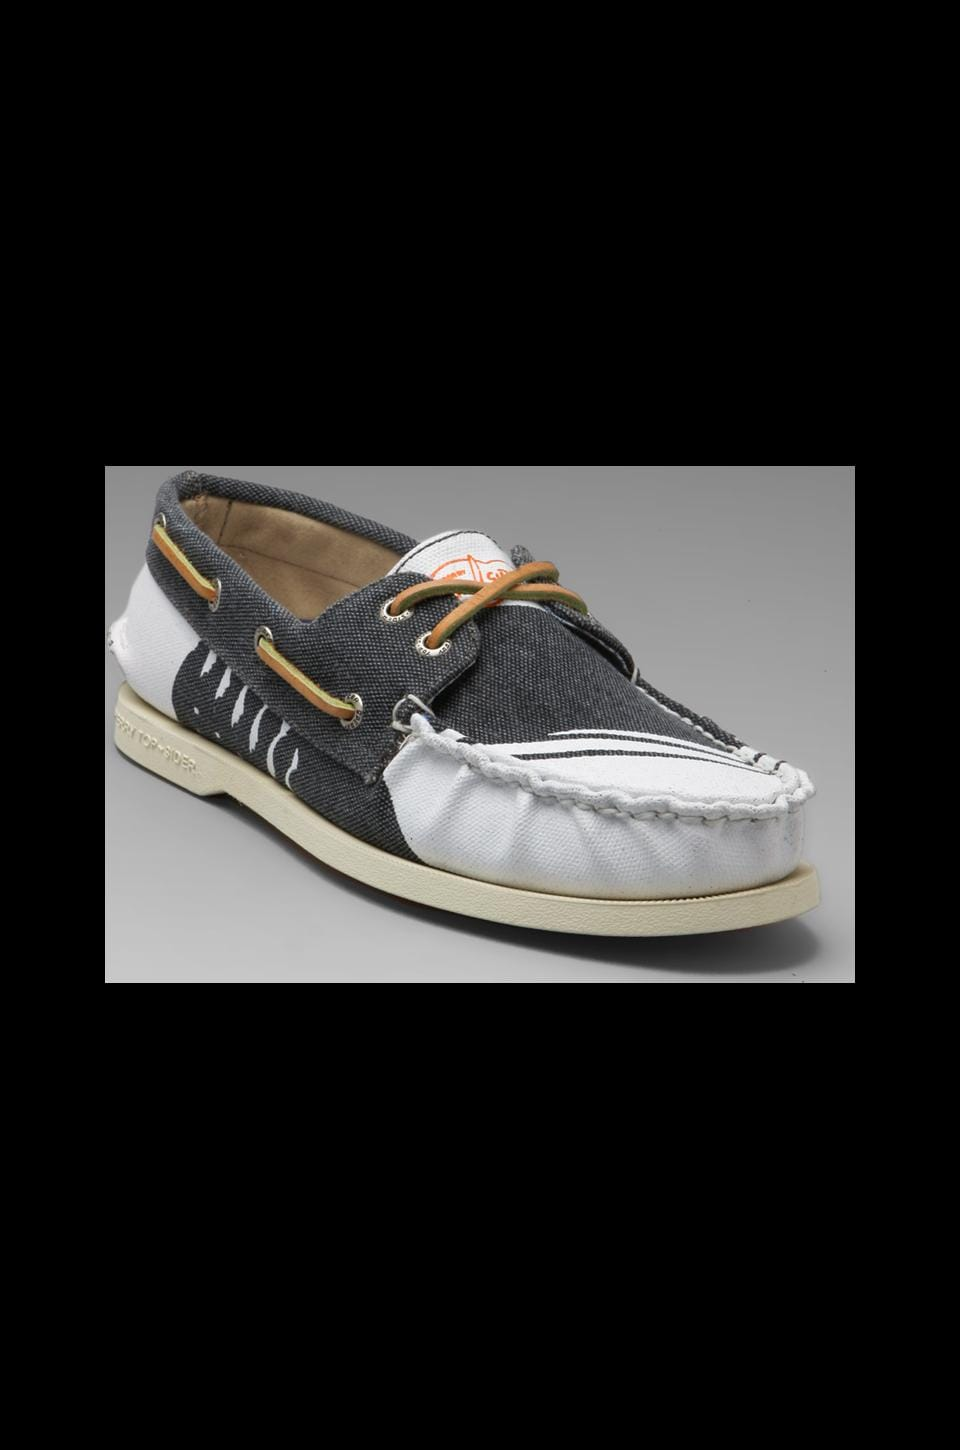 Sperry Top-Sider A/O 2-Eye Hand Painted in Rigger Navy/White